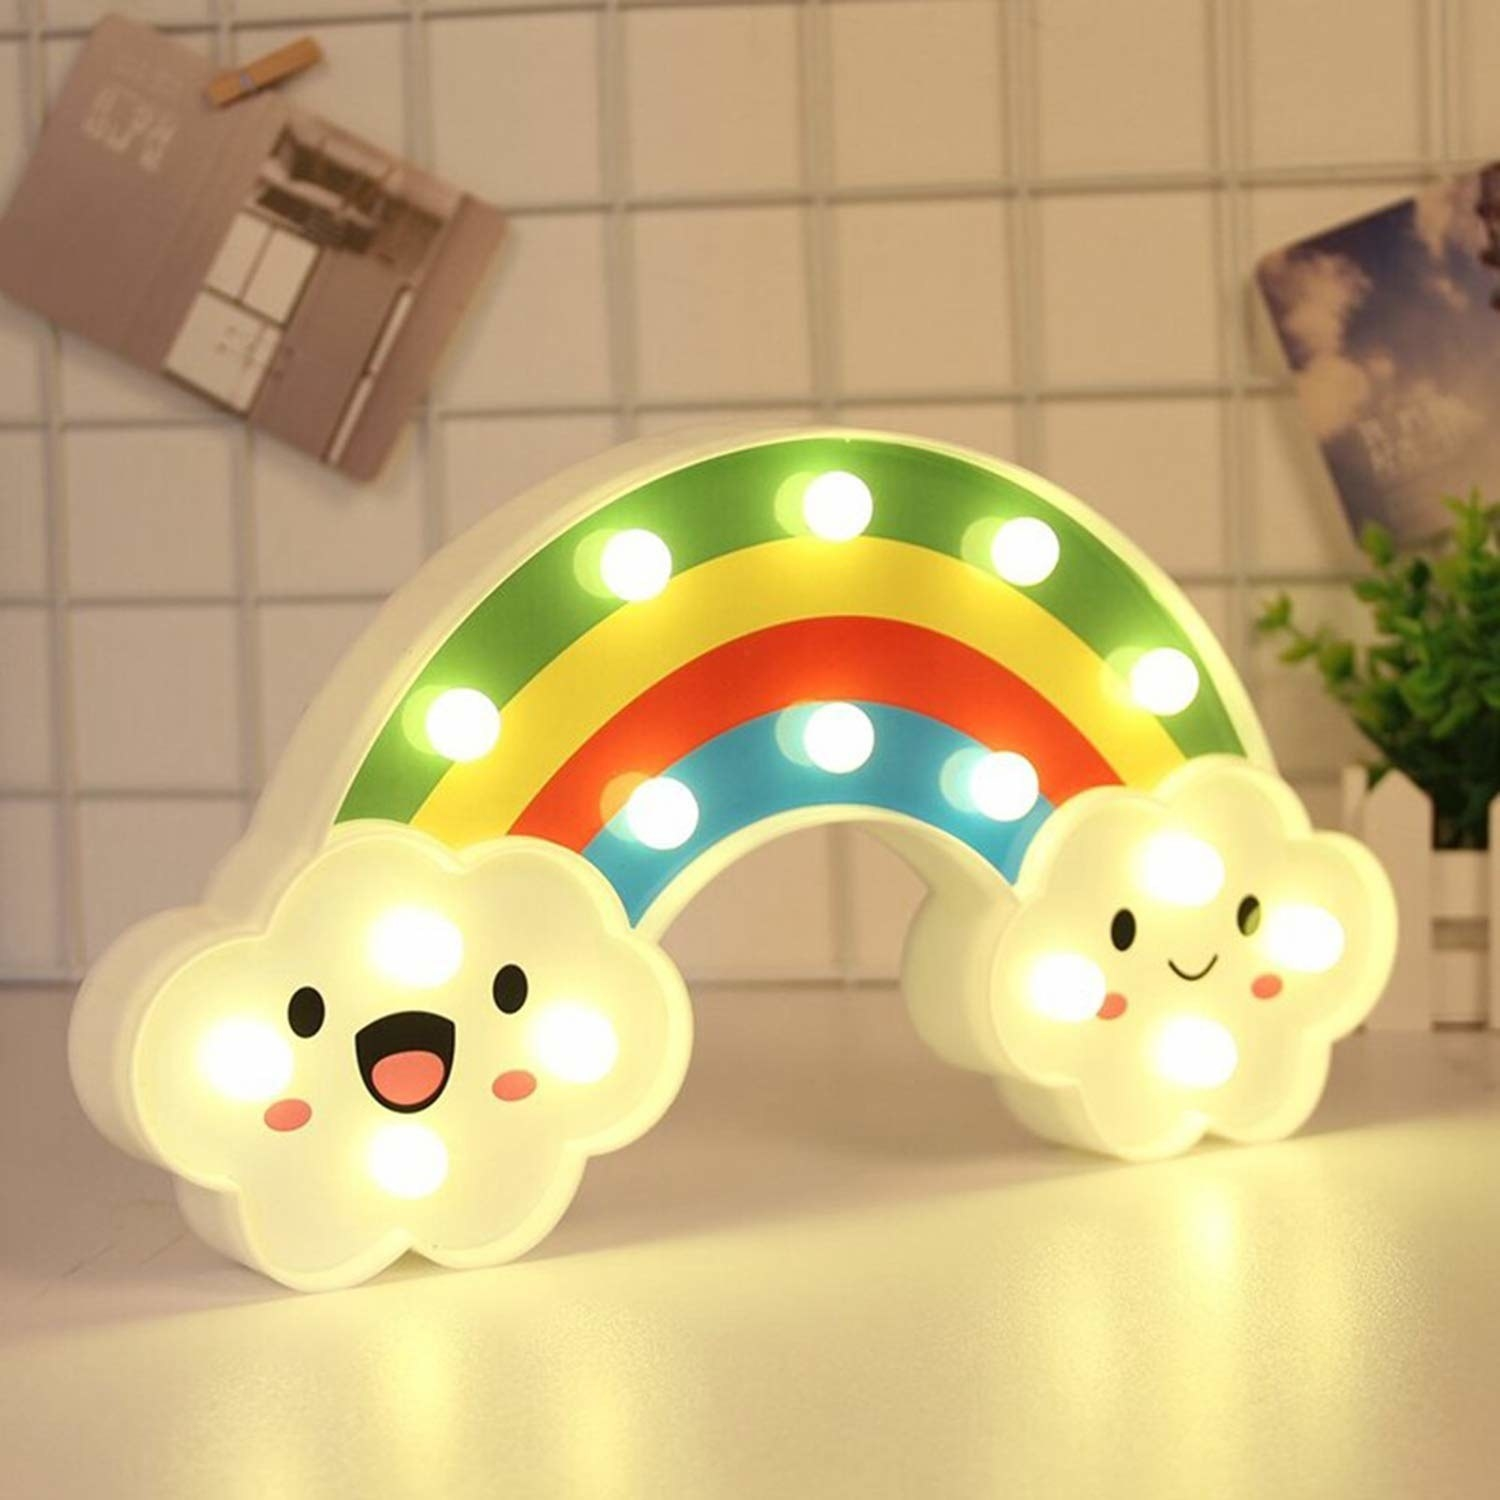 A rainbow night light with clouds at both ends.